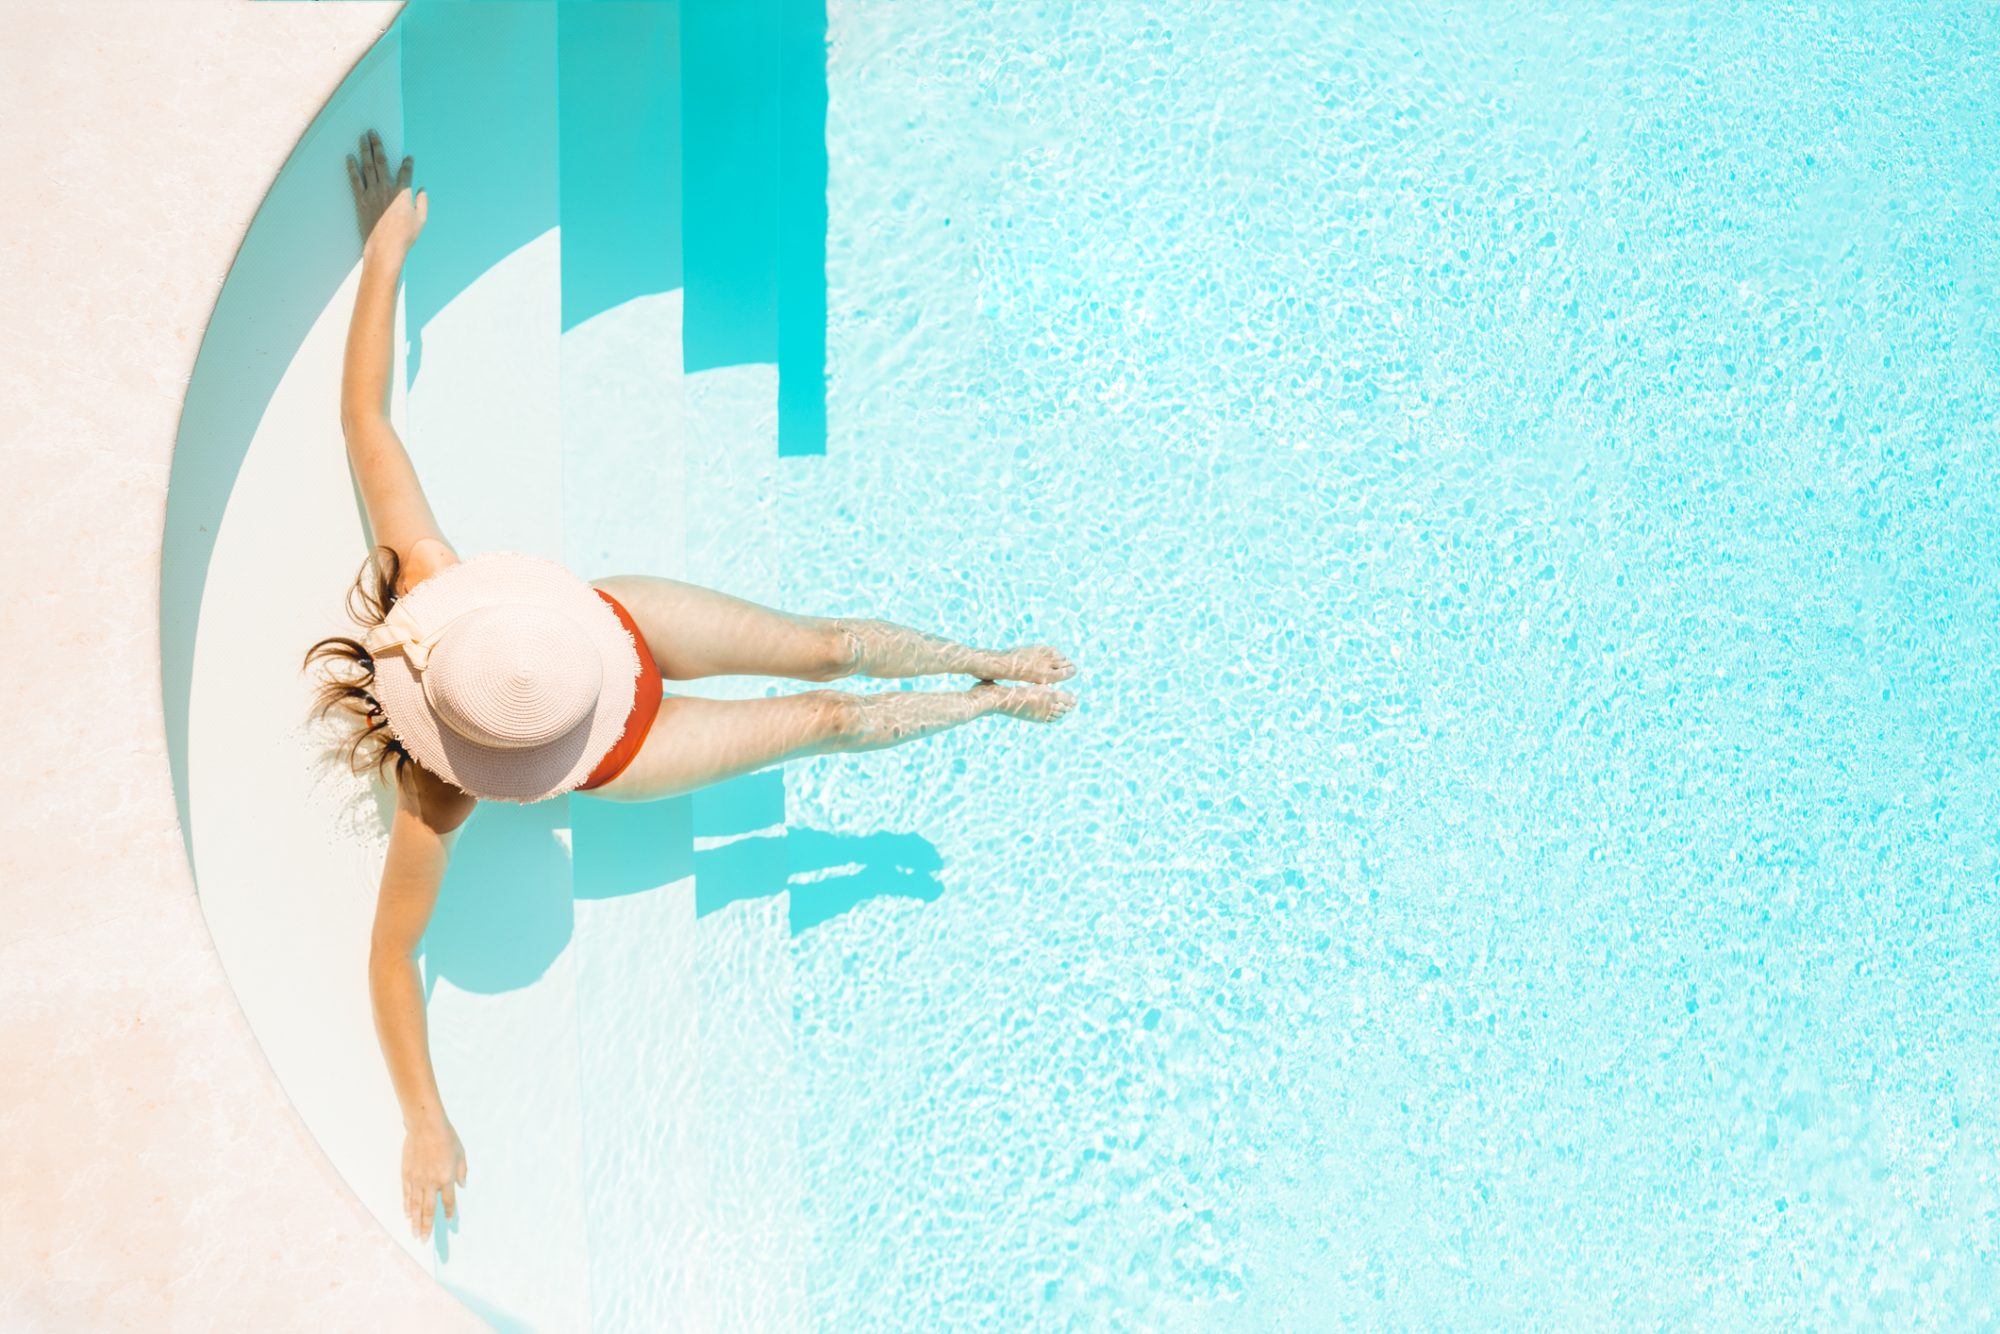 Woman Lounging in Pool